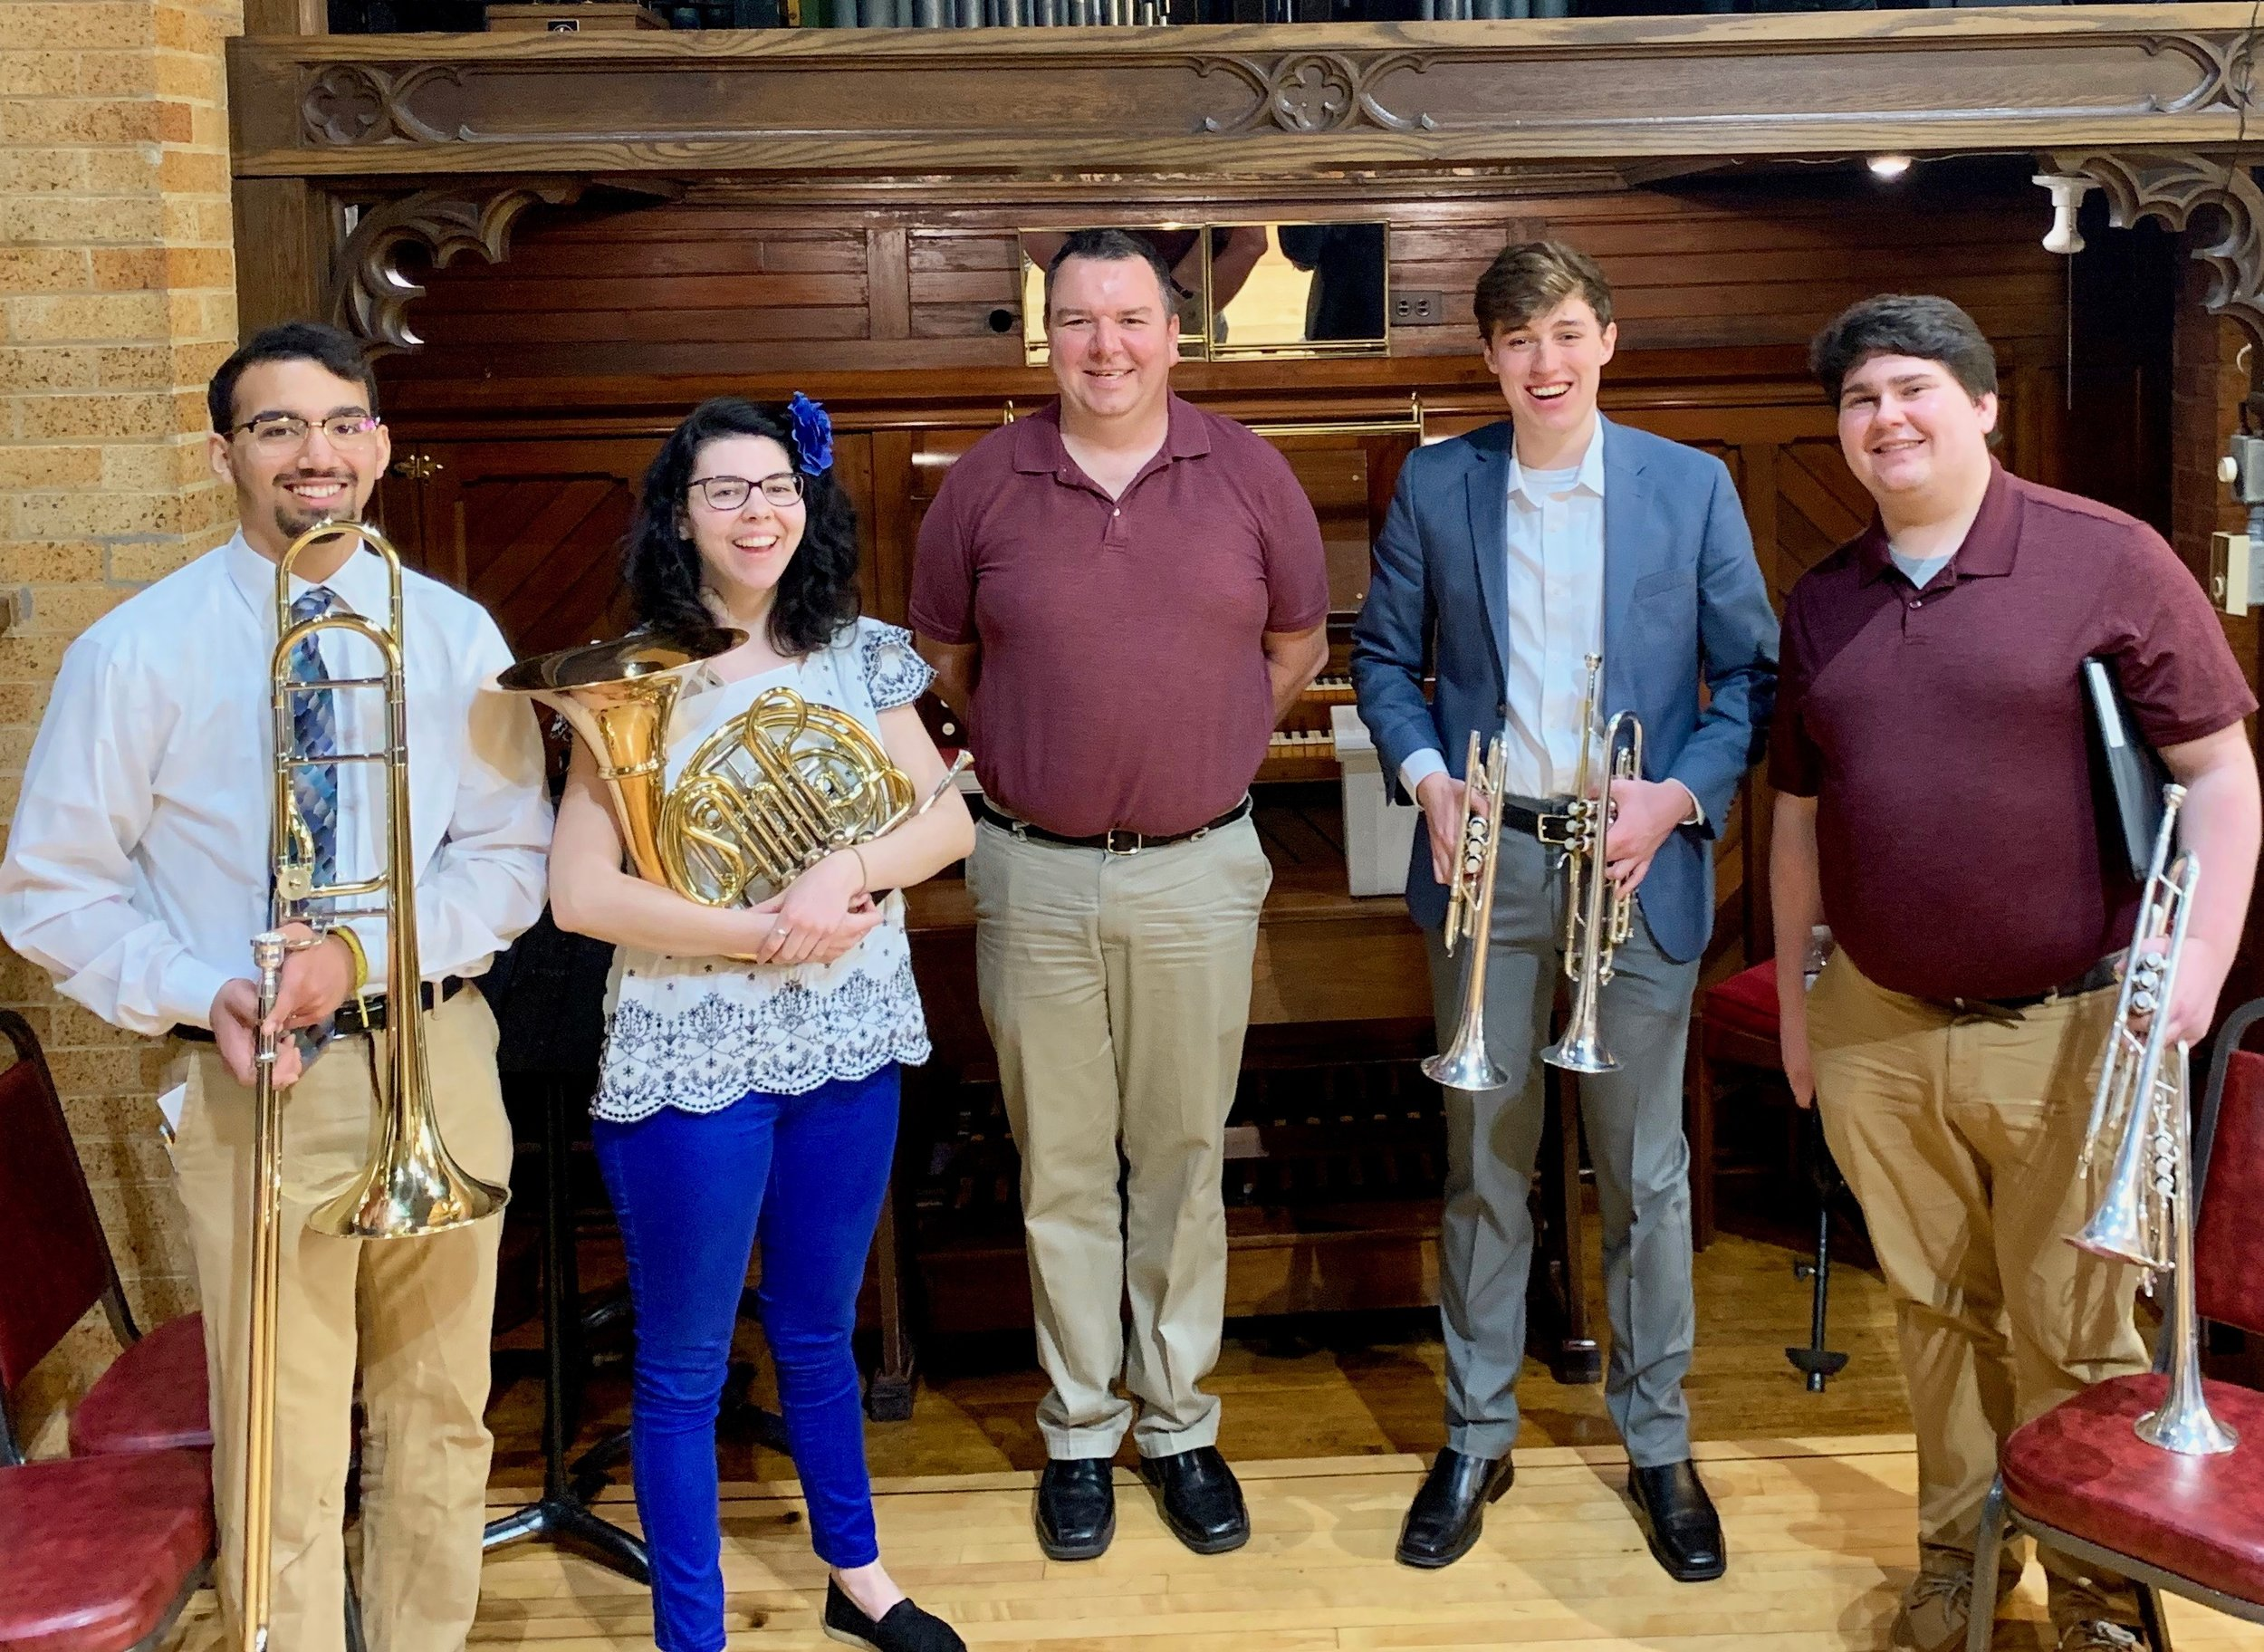 Organist & Minister of Music, W. Stephen Rose (center), with the Easter brass quartet, led by Hali Shepard (center-left).